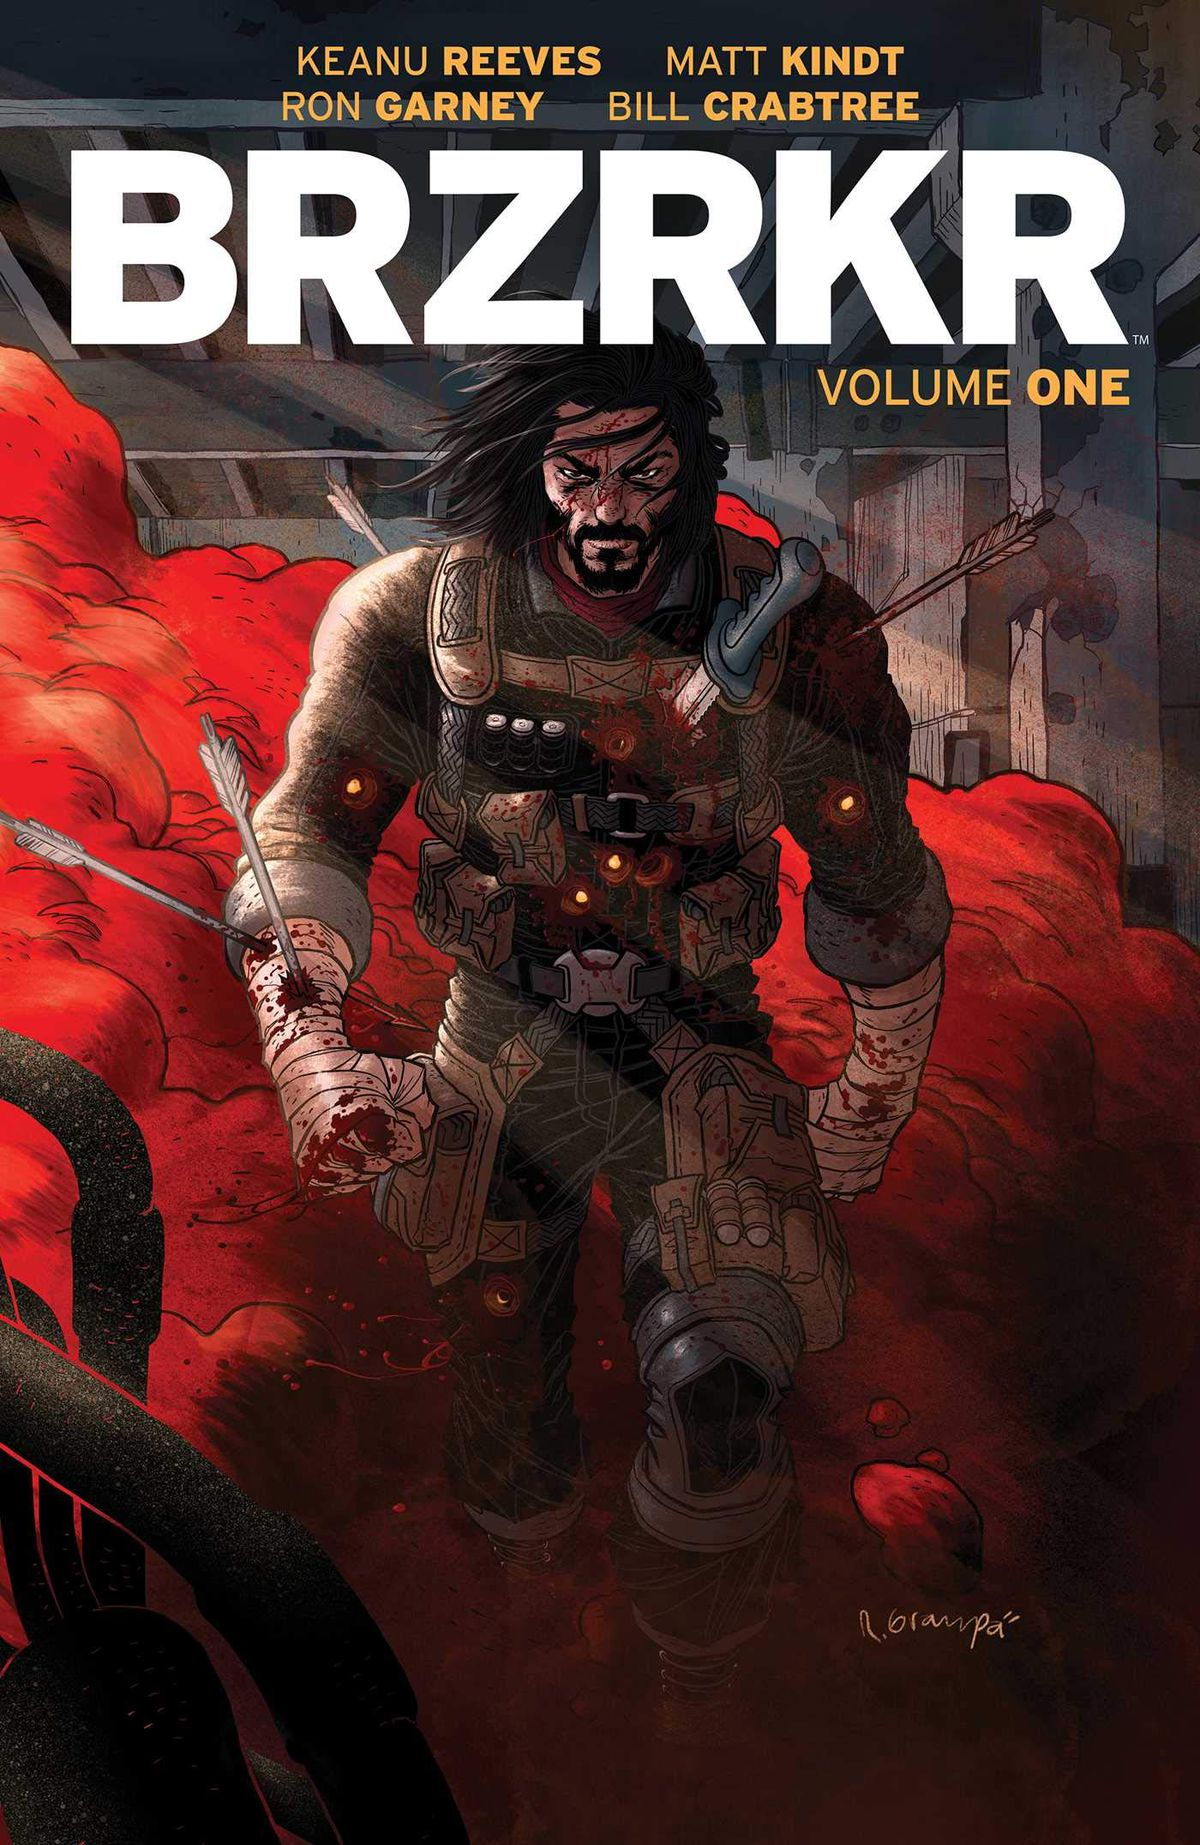 A bloodied soldier walks out of a pitched battle and towards the reader — he looks like a bearded and long-haired Keanu Reeves — on the cover of BRZRKR Vol. 1 (2021).